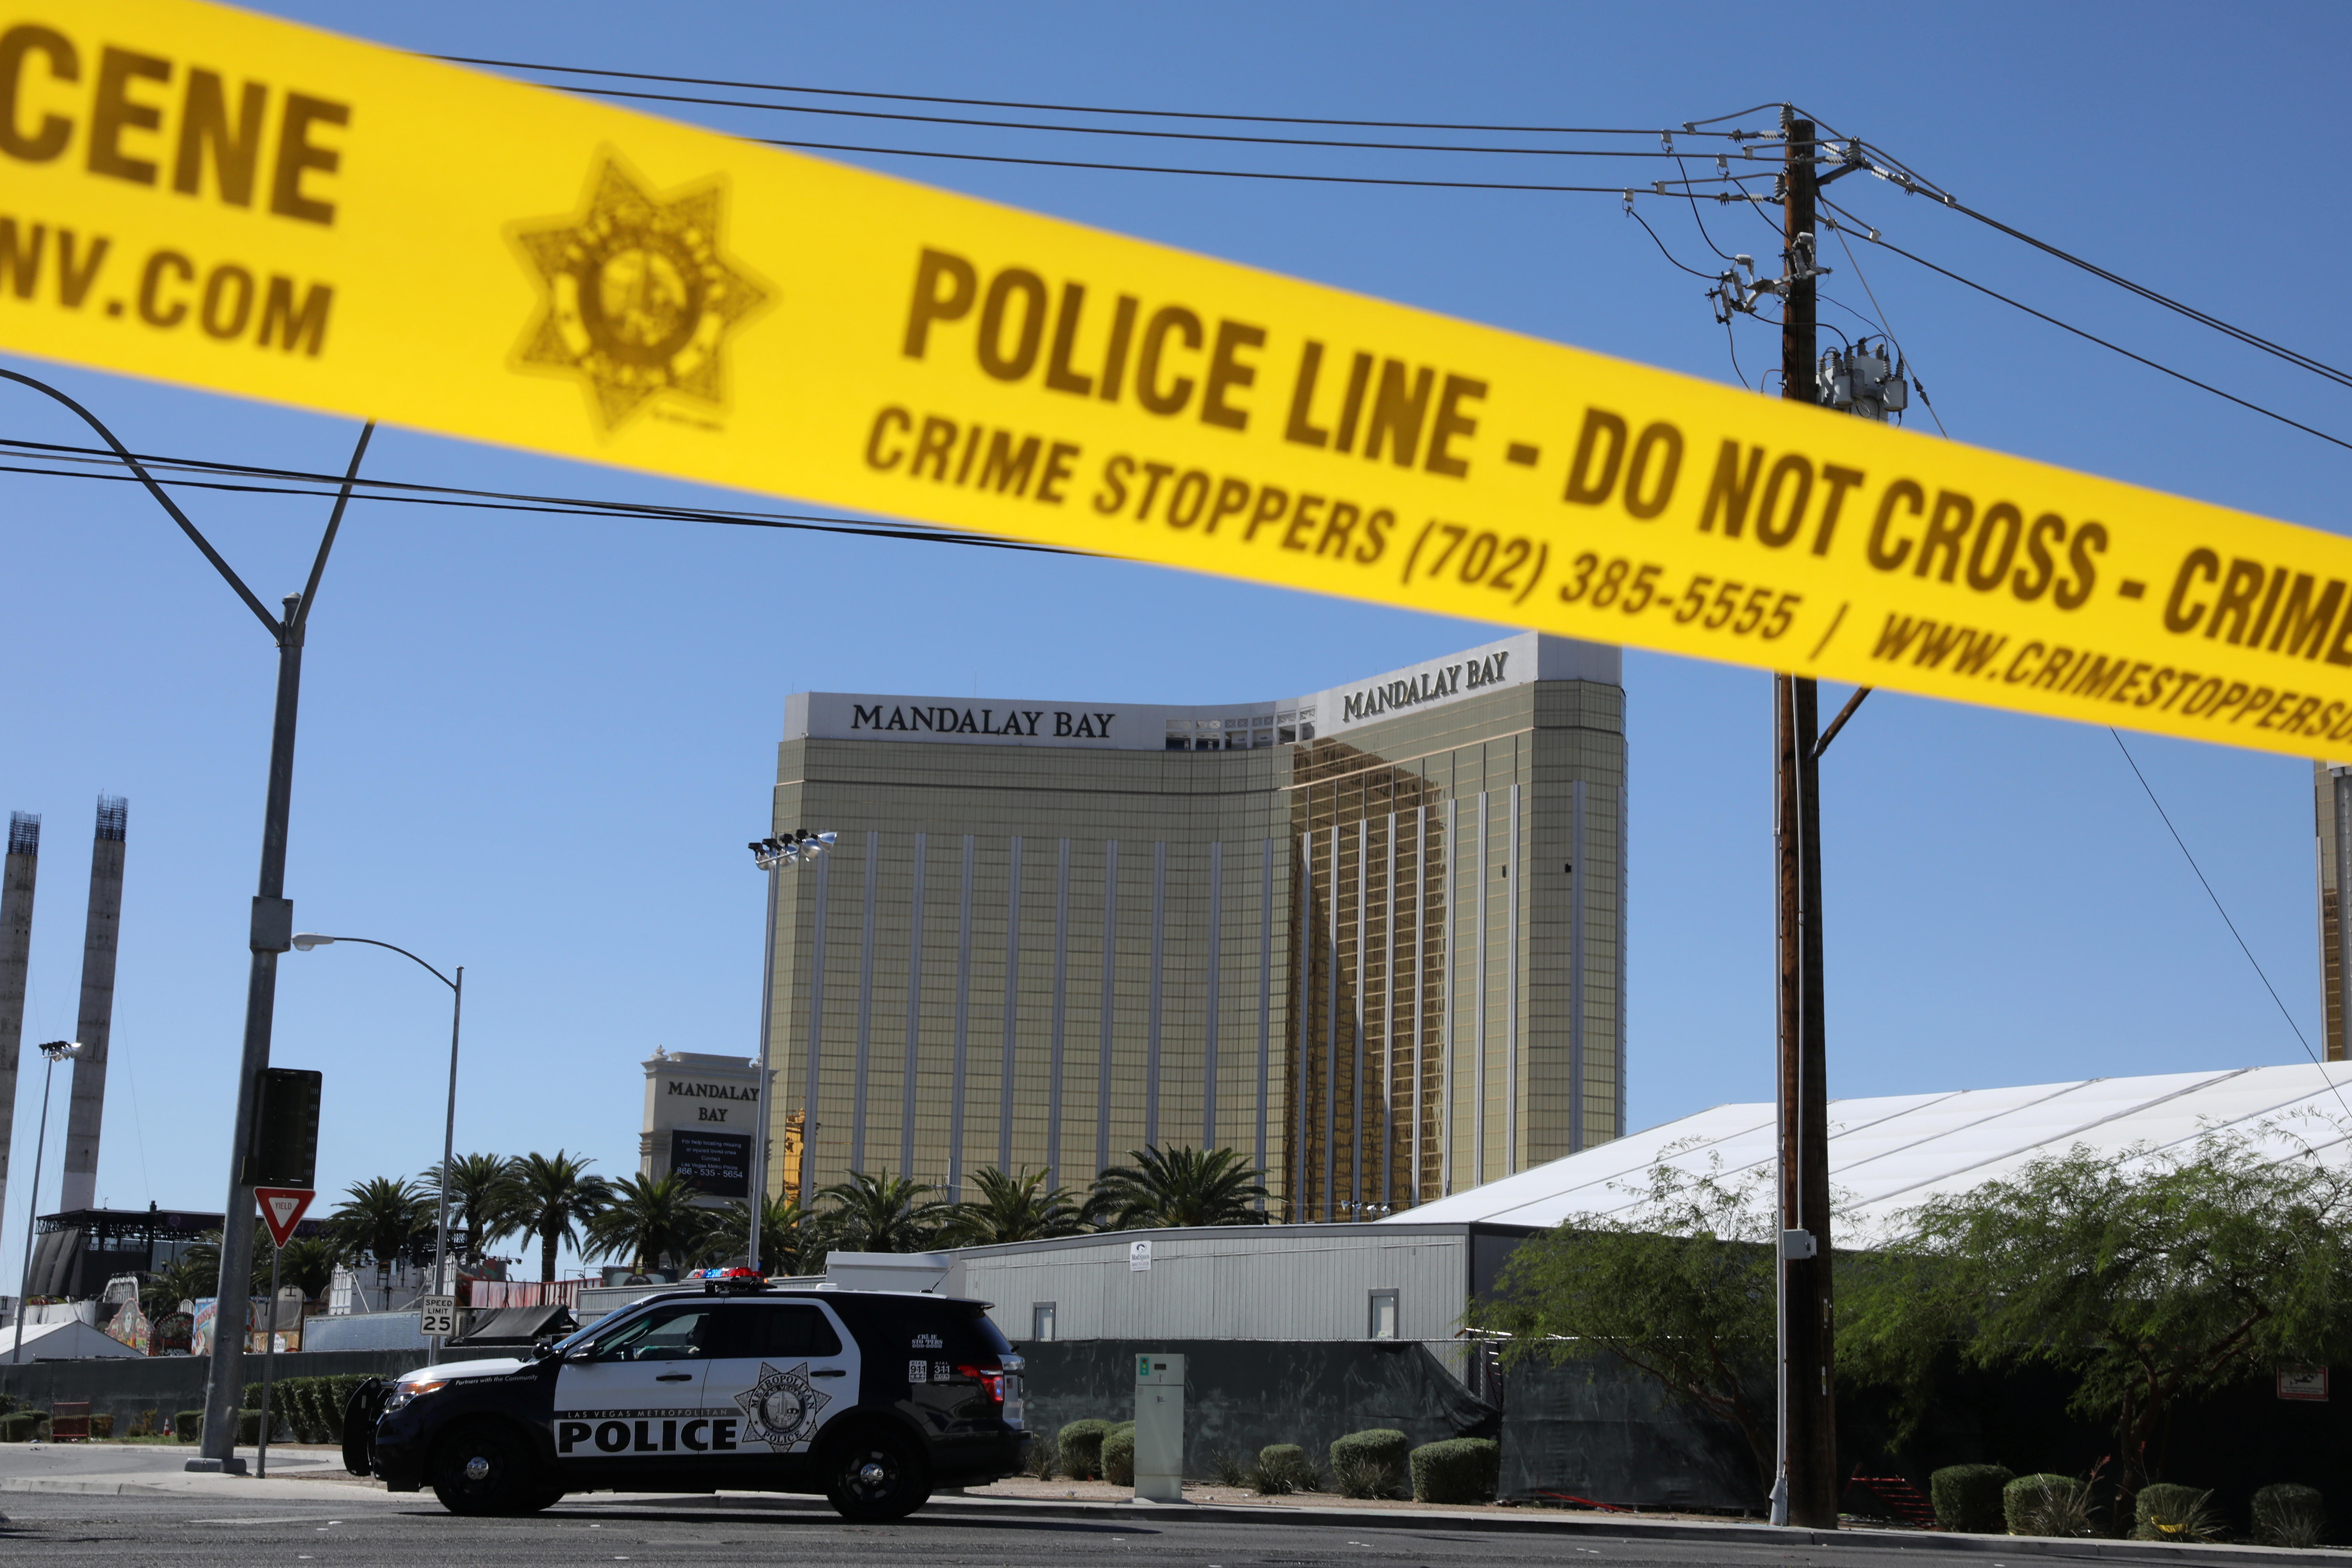 Created At 2017 10 11 0632 Police Roadbike Toronto Greey Blue Thenewstribunecom Questions Linger As Timeline Shifts In Las Vegas Shooting Rampage